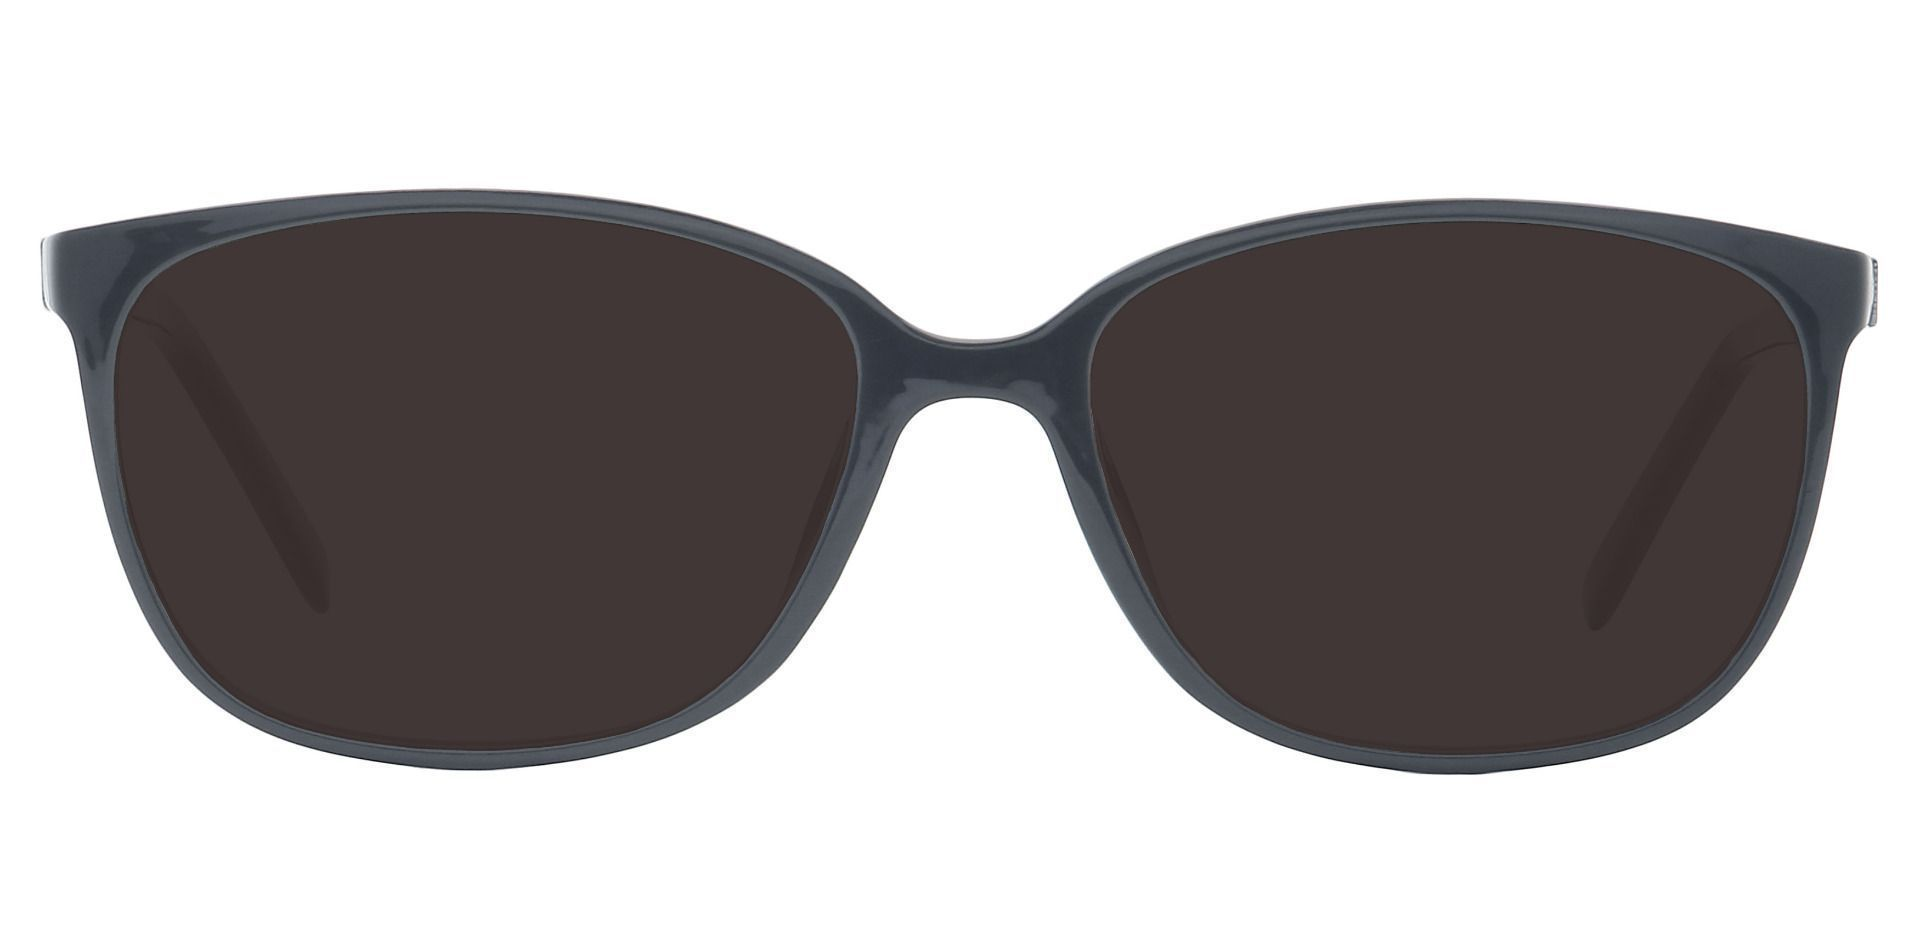 Archie Square Prescription Sunglasses - Black Frame With Gray Lenses